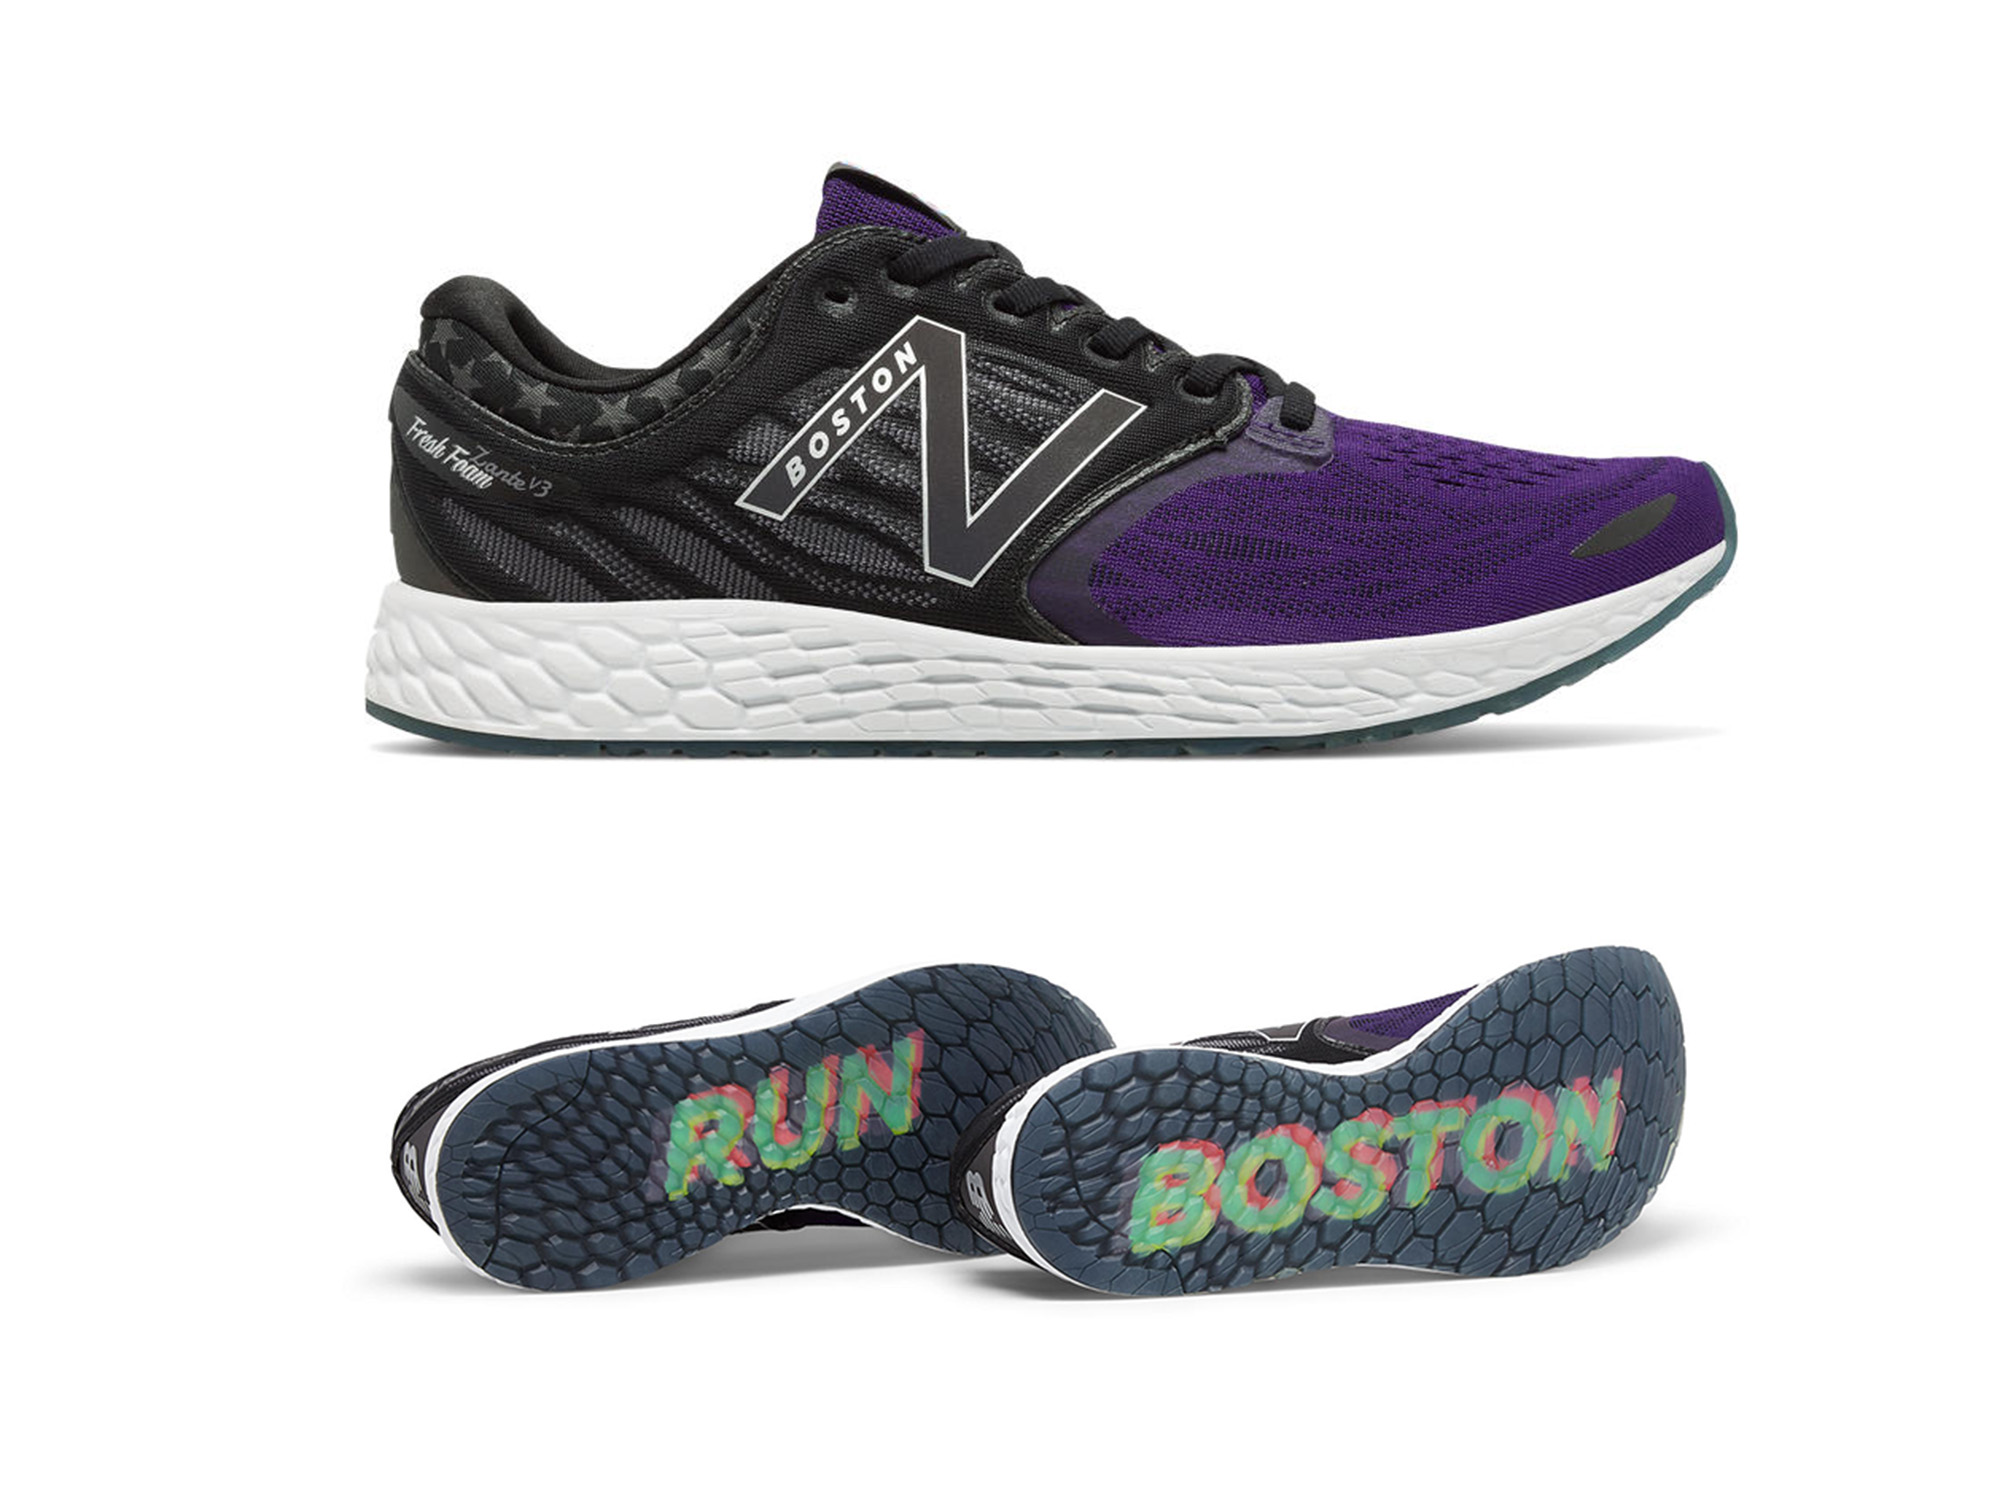 Running Boston Éditions De 2017 MarathonLes Limitées Shoes FKJTl13c